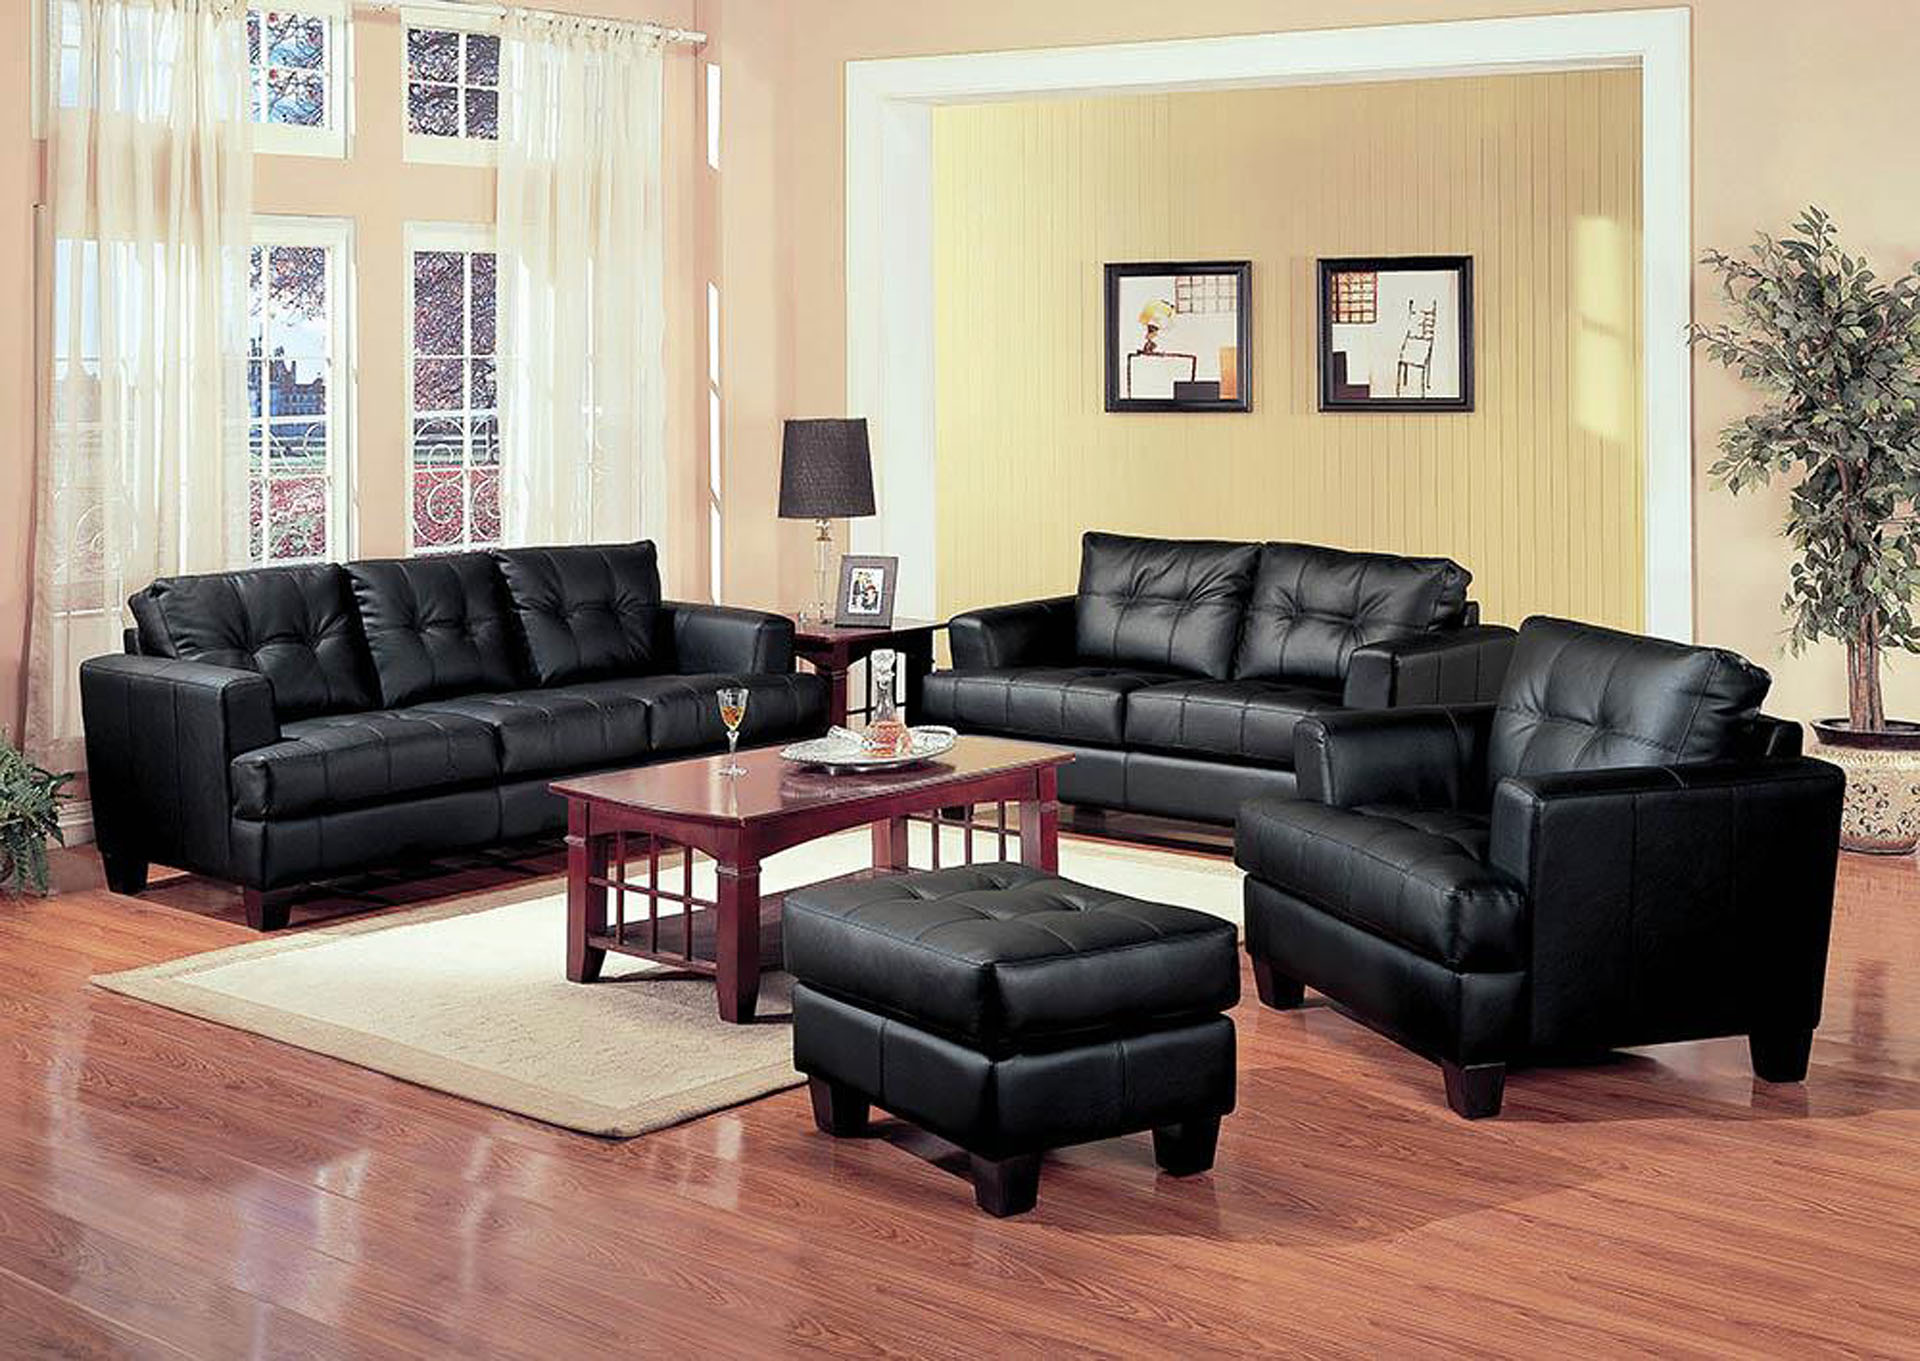 Samuel Black Bonded Leather Sofa,Coaster Furniture